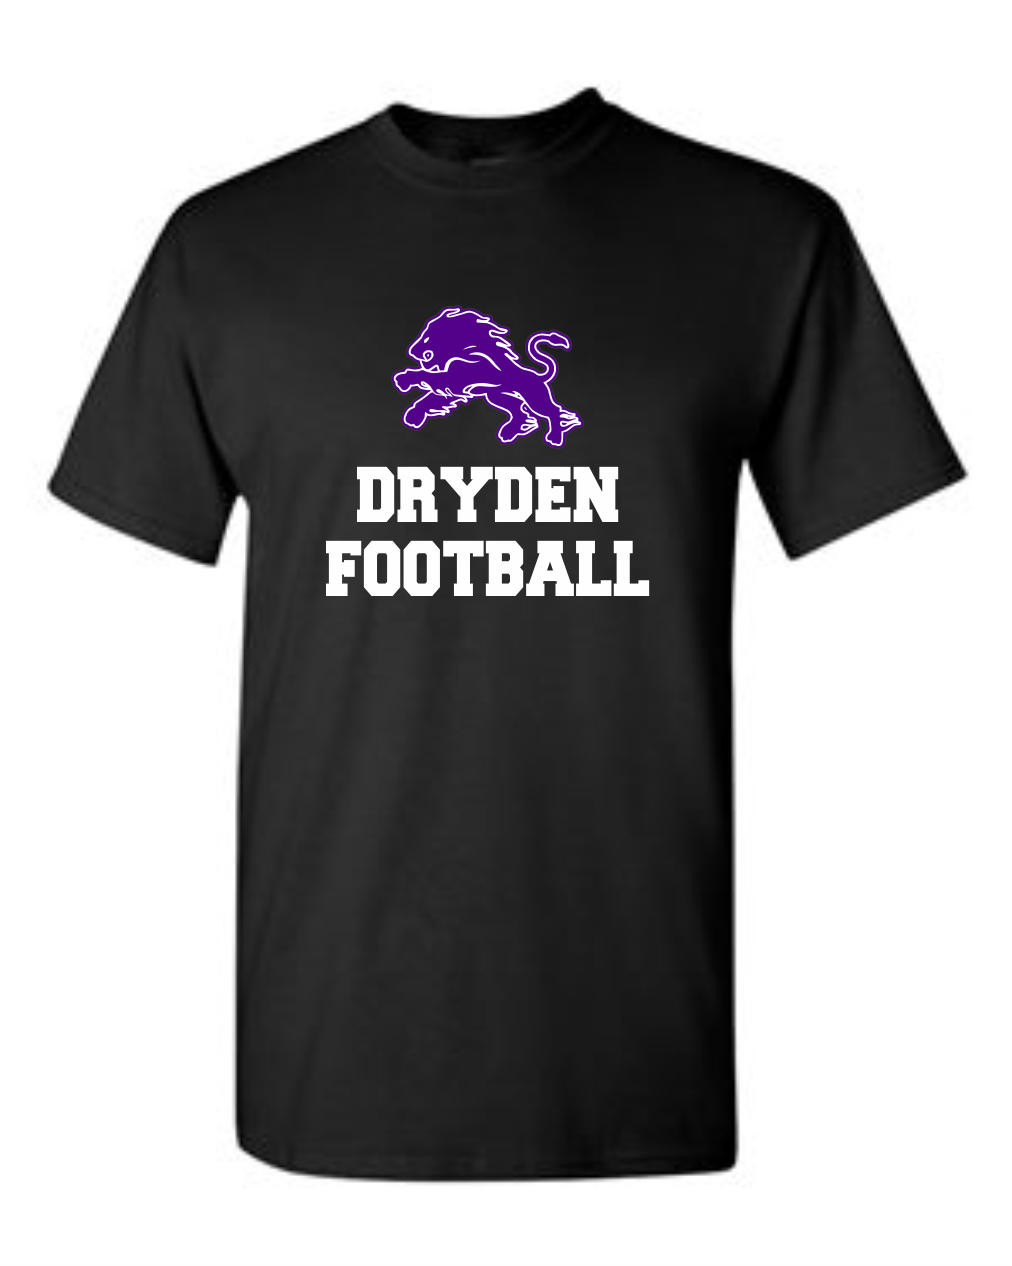 Dryden Football Tee Black- 2 Color Image